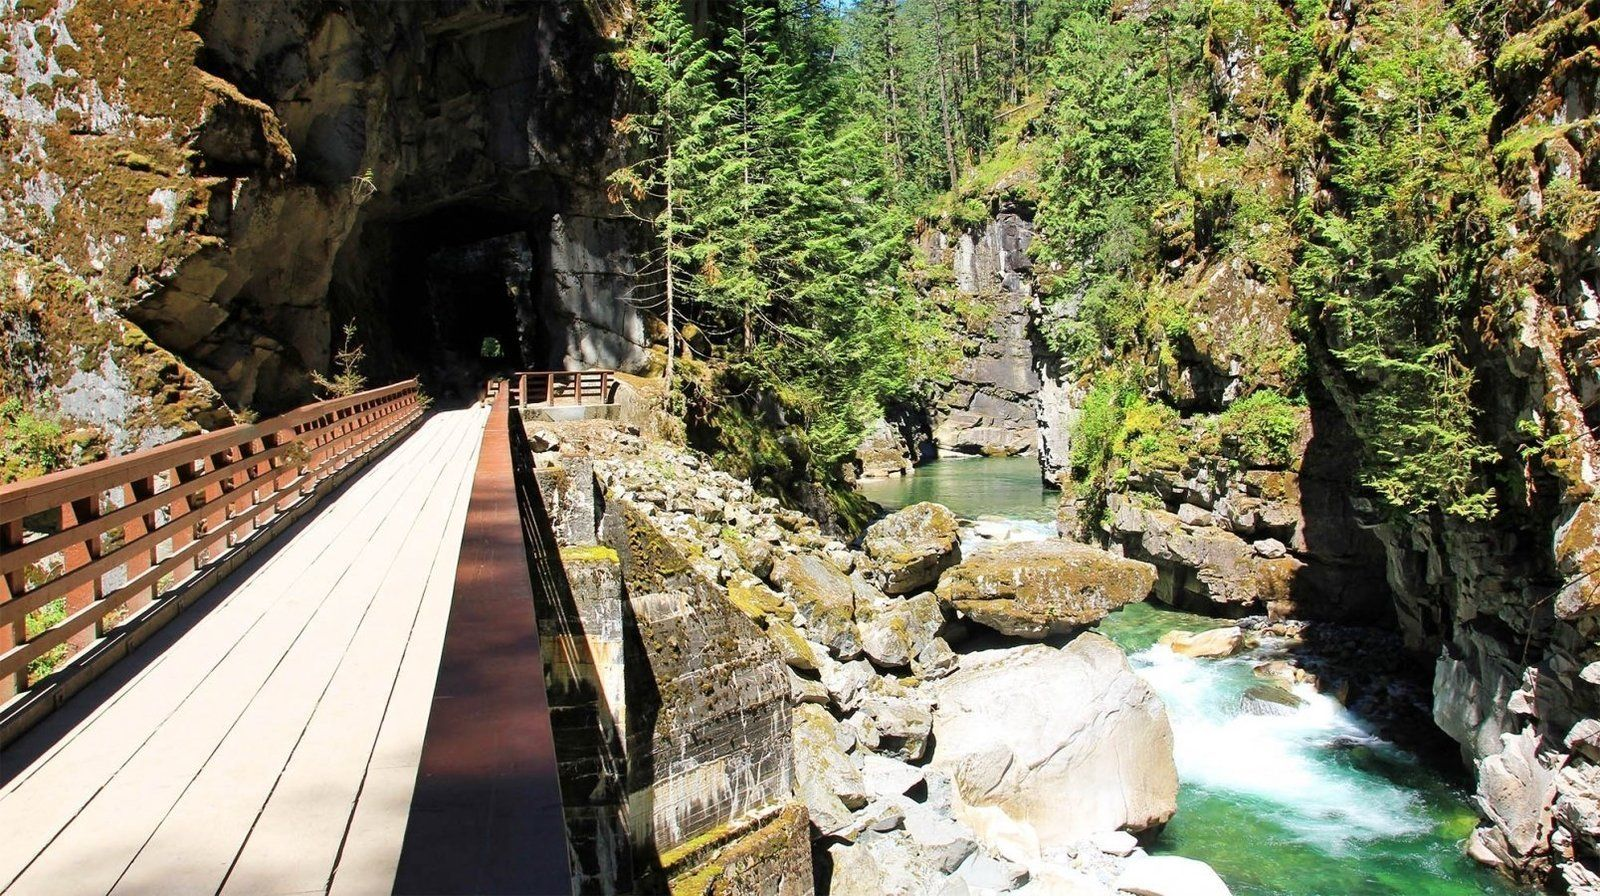 Othello Tunnels in Canada: How long it takes, how to get here